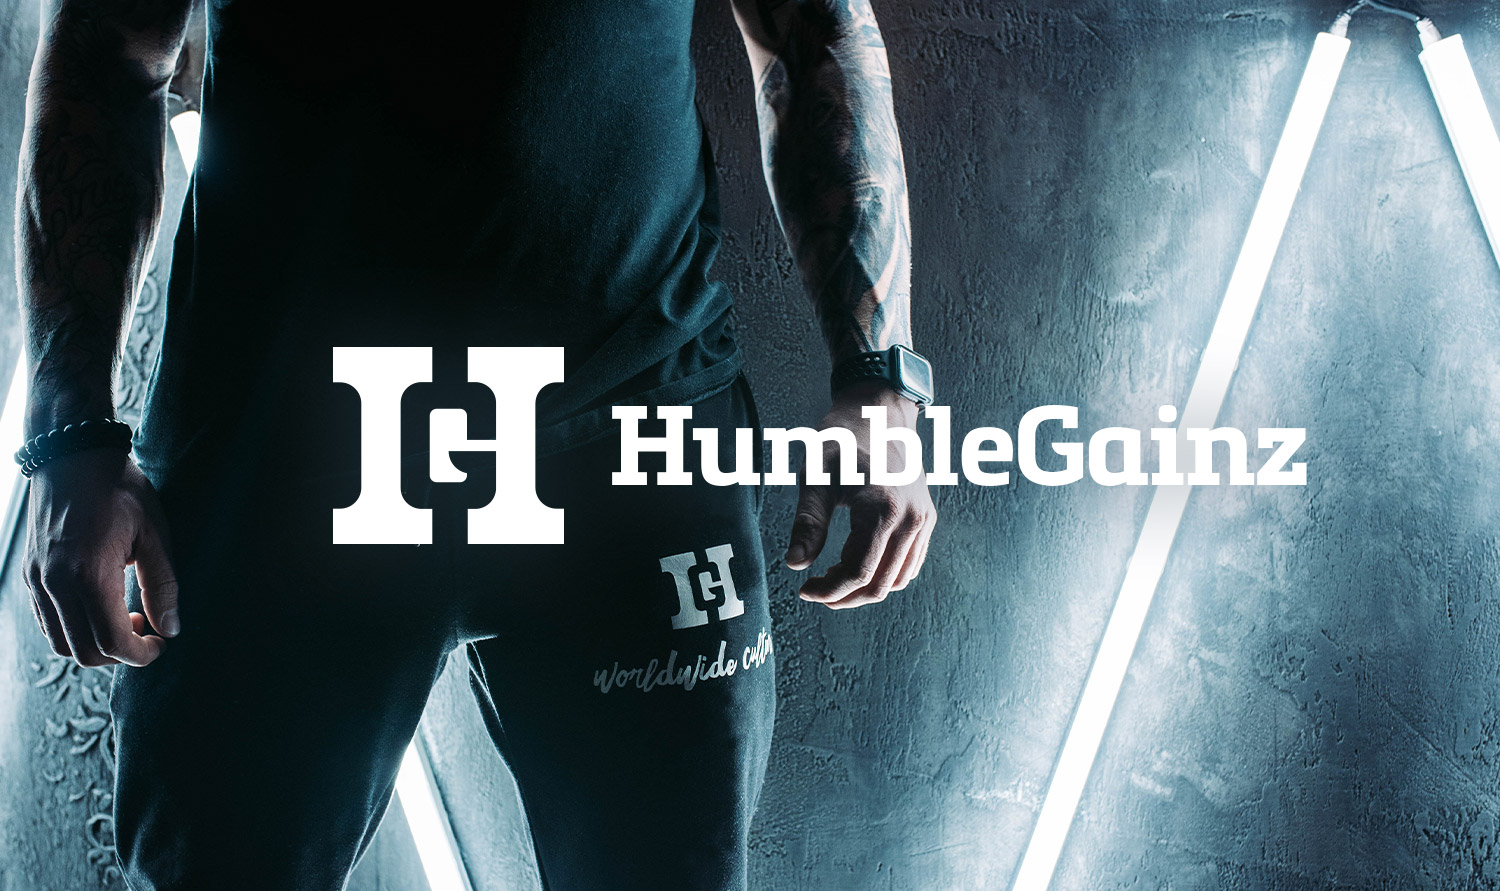 humble-gainz-featured